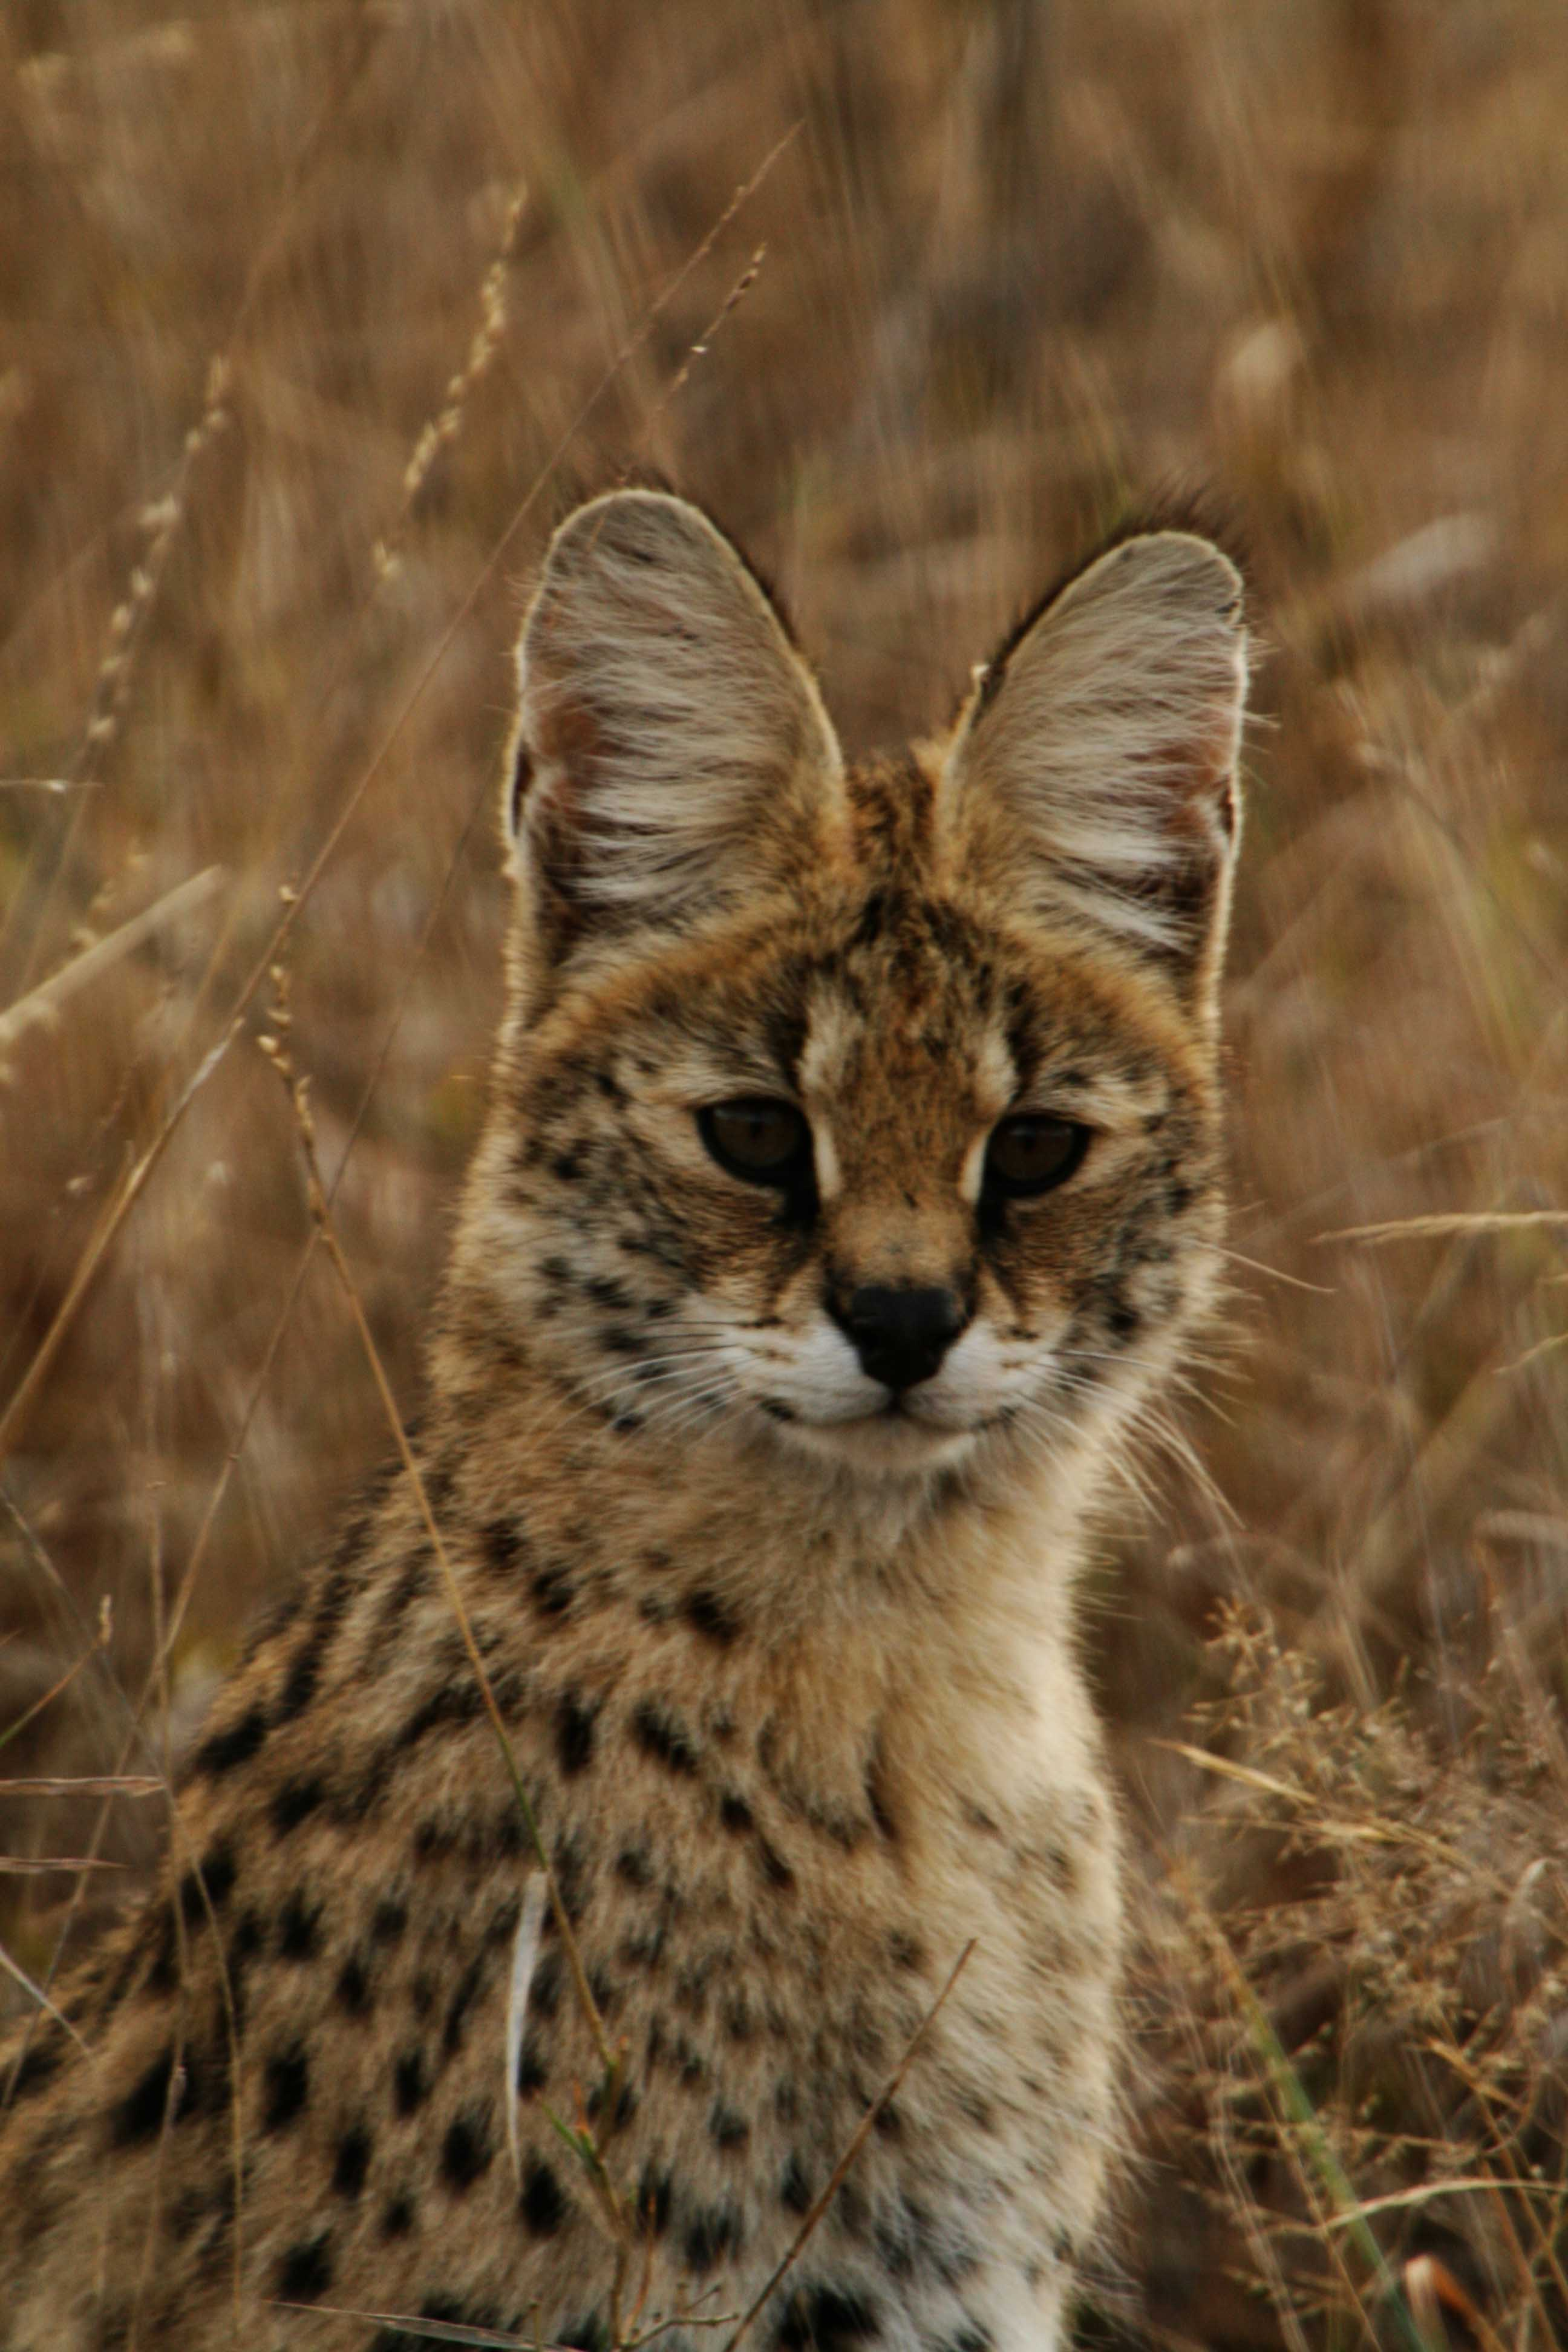 http://upload.wikimedia.org/wikipedia/commons/e/e8/Serval_portrait.jpg